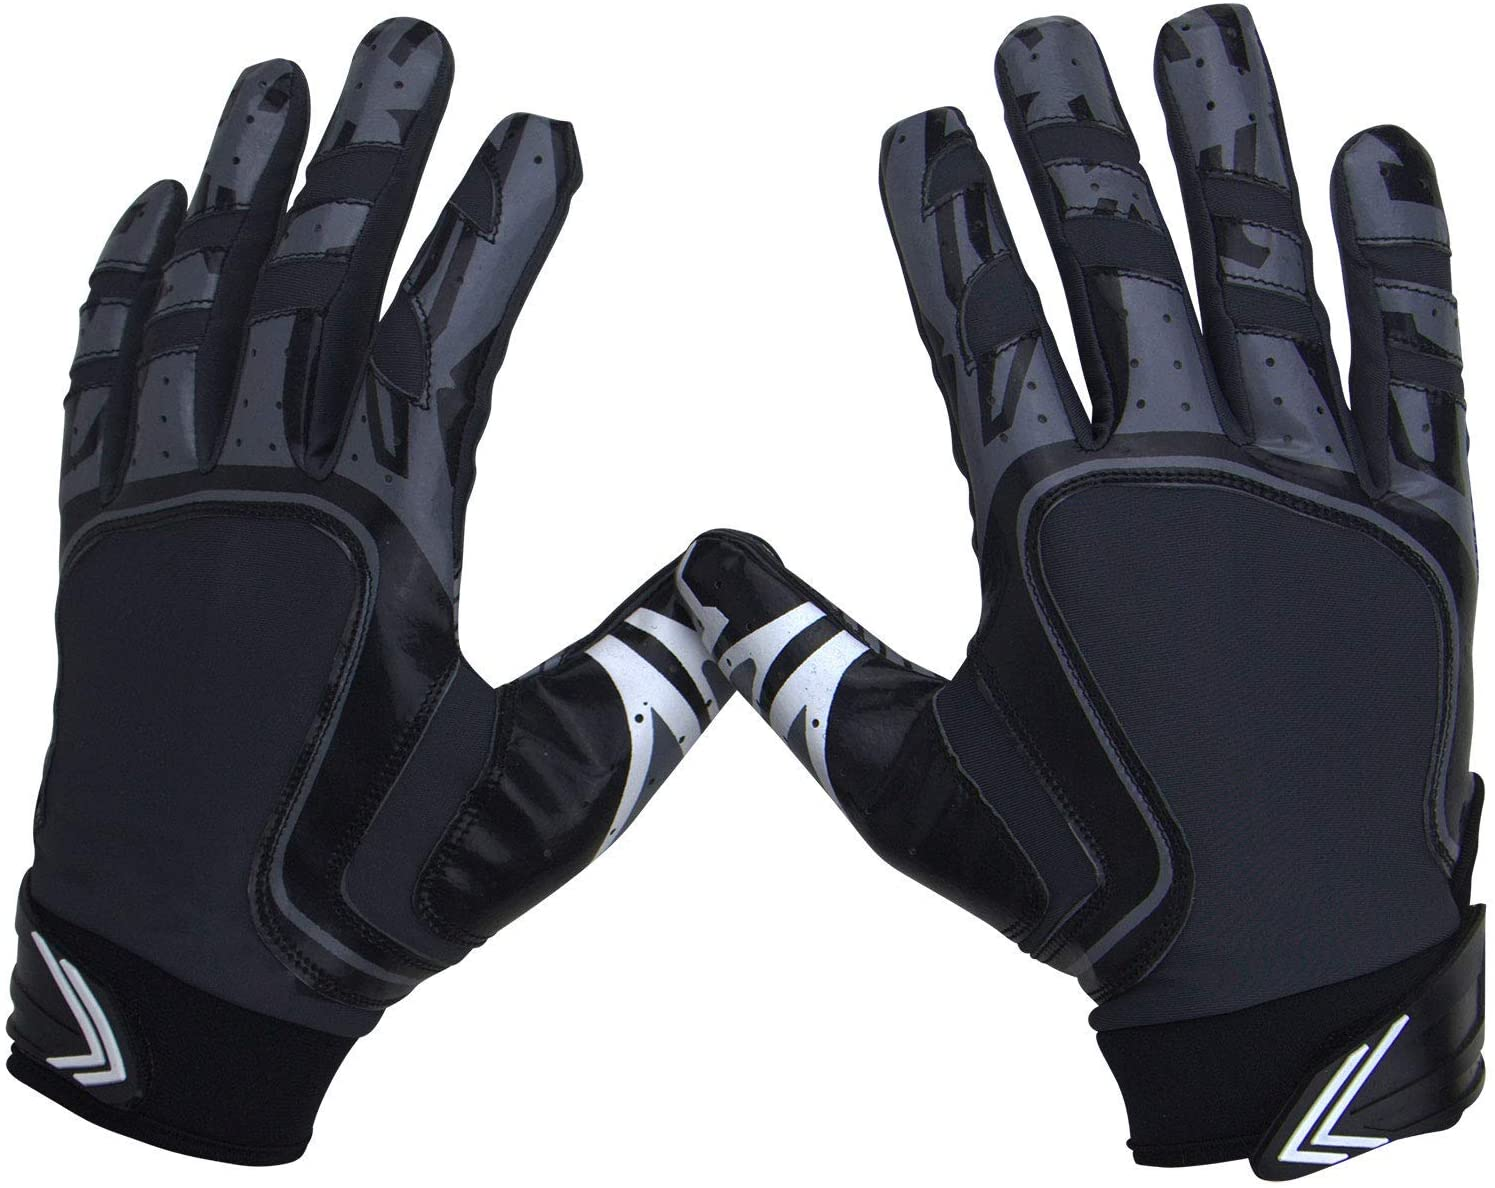 10 best football gloves